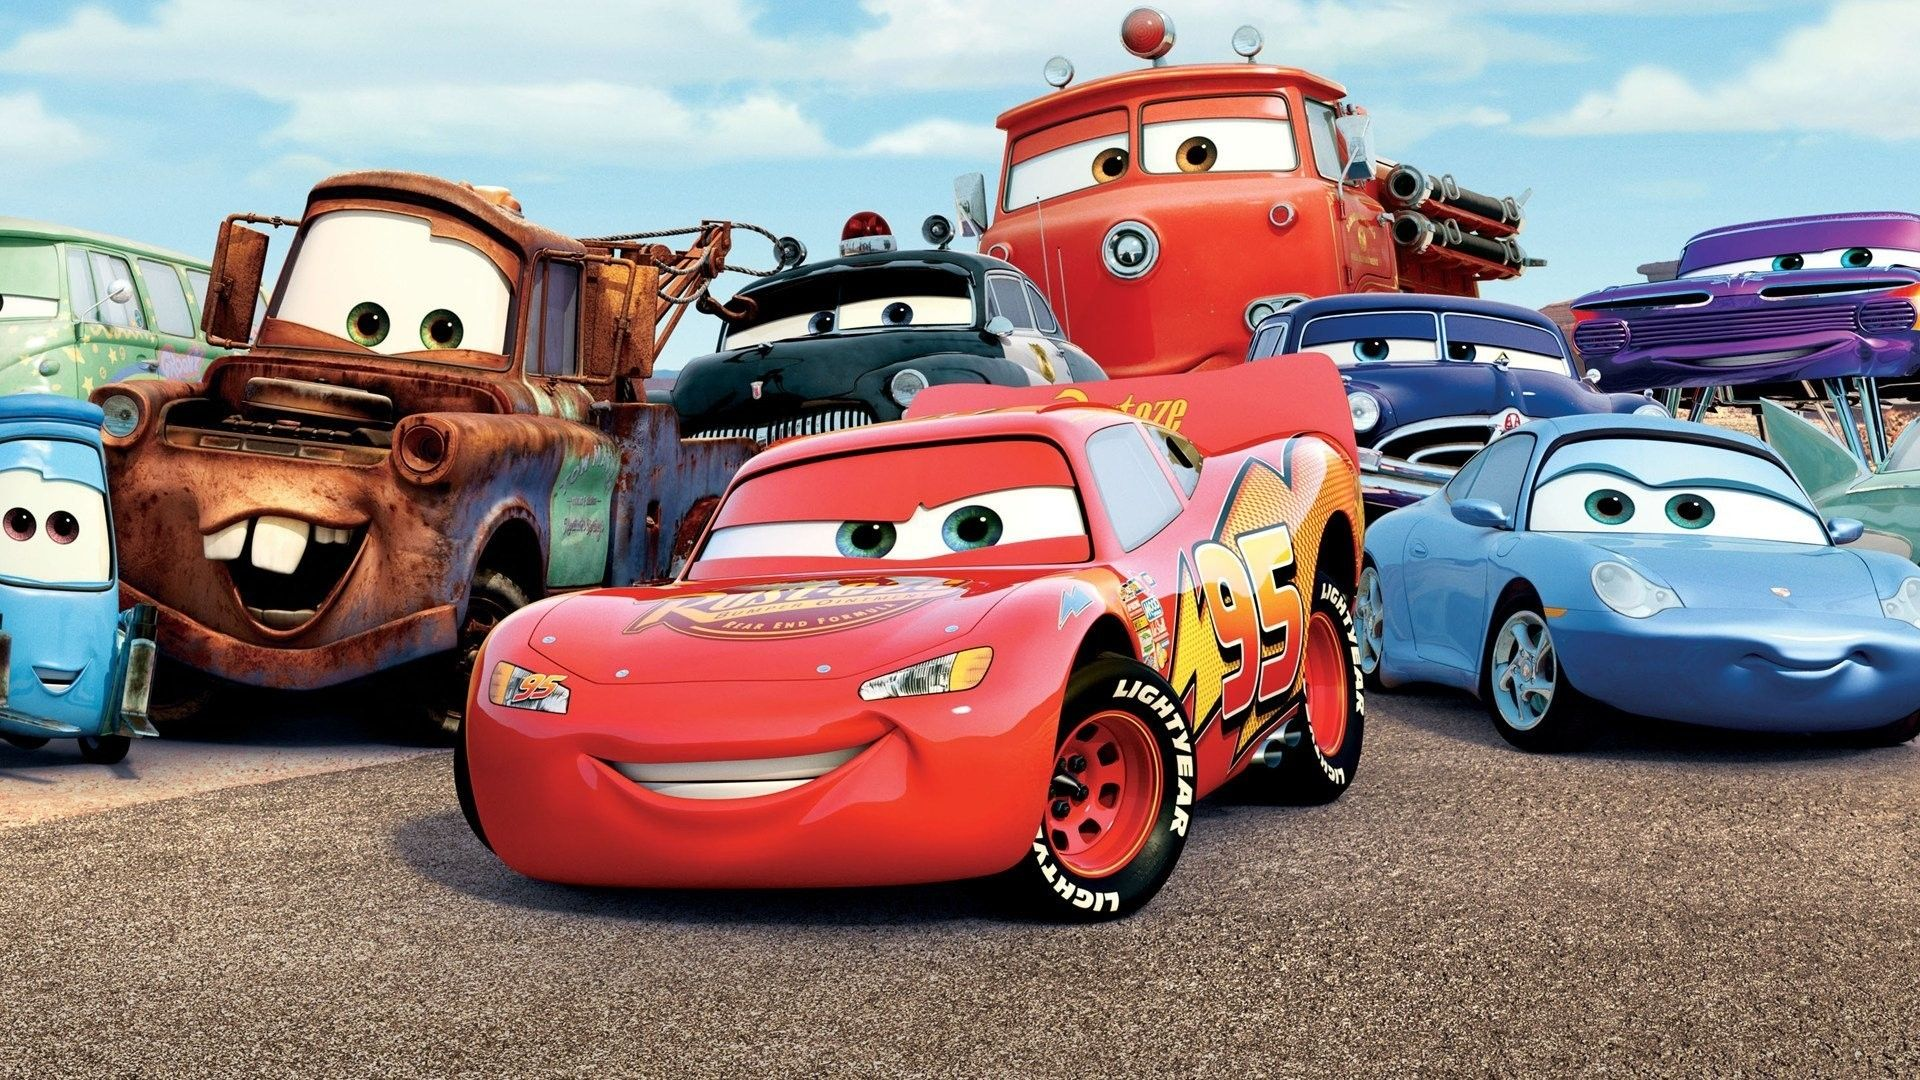 Res 1920x1080 Lightning Mcqueen Wallpapers Filme Carros Da Disney Carros Da Disney Carros De Cinema